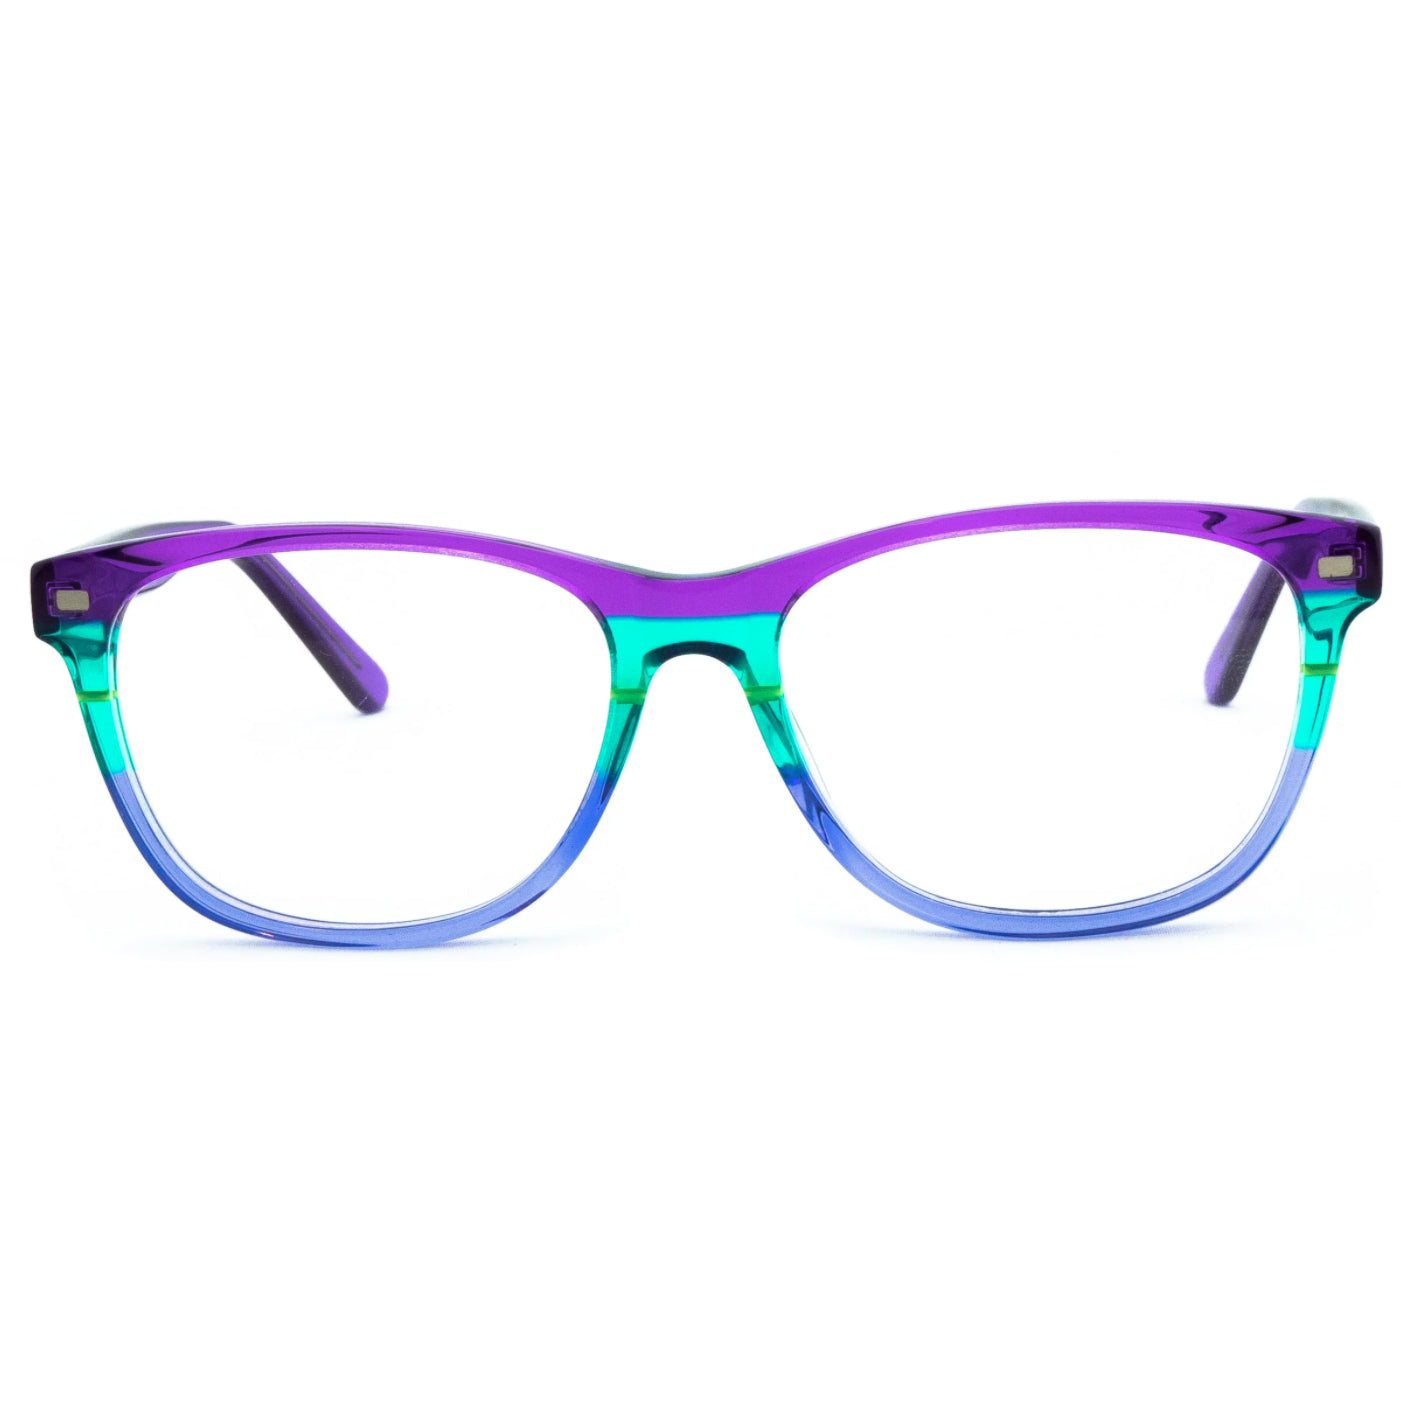 Eyeglasses - Rebel AD 025